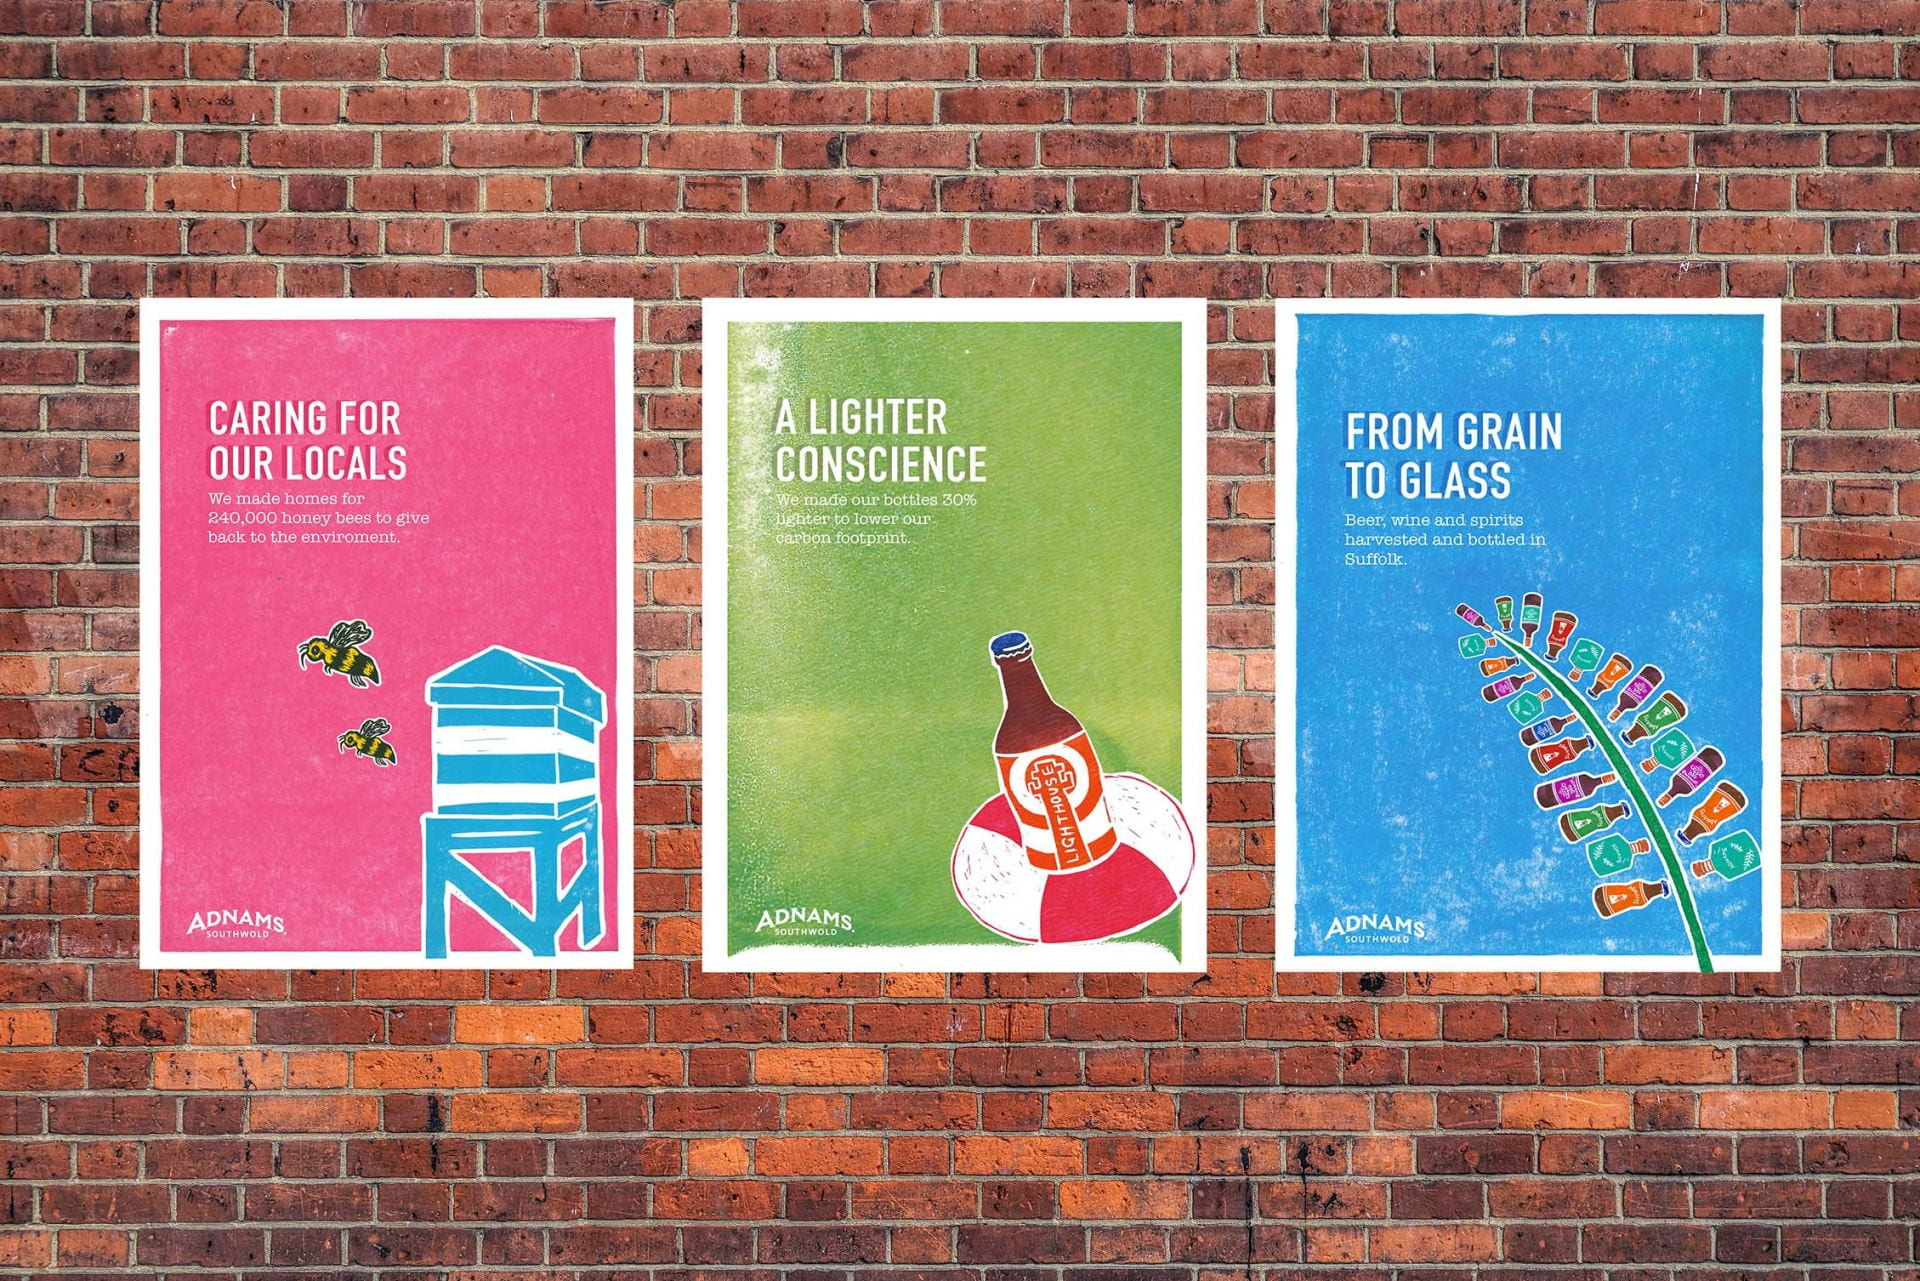 Adnams lino printed poster designs, D&AD New Blood 2018.